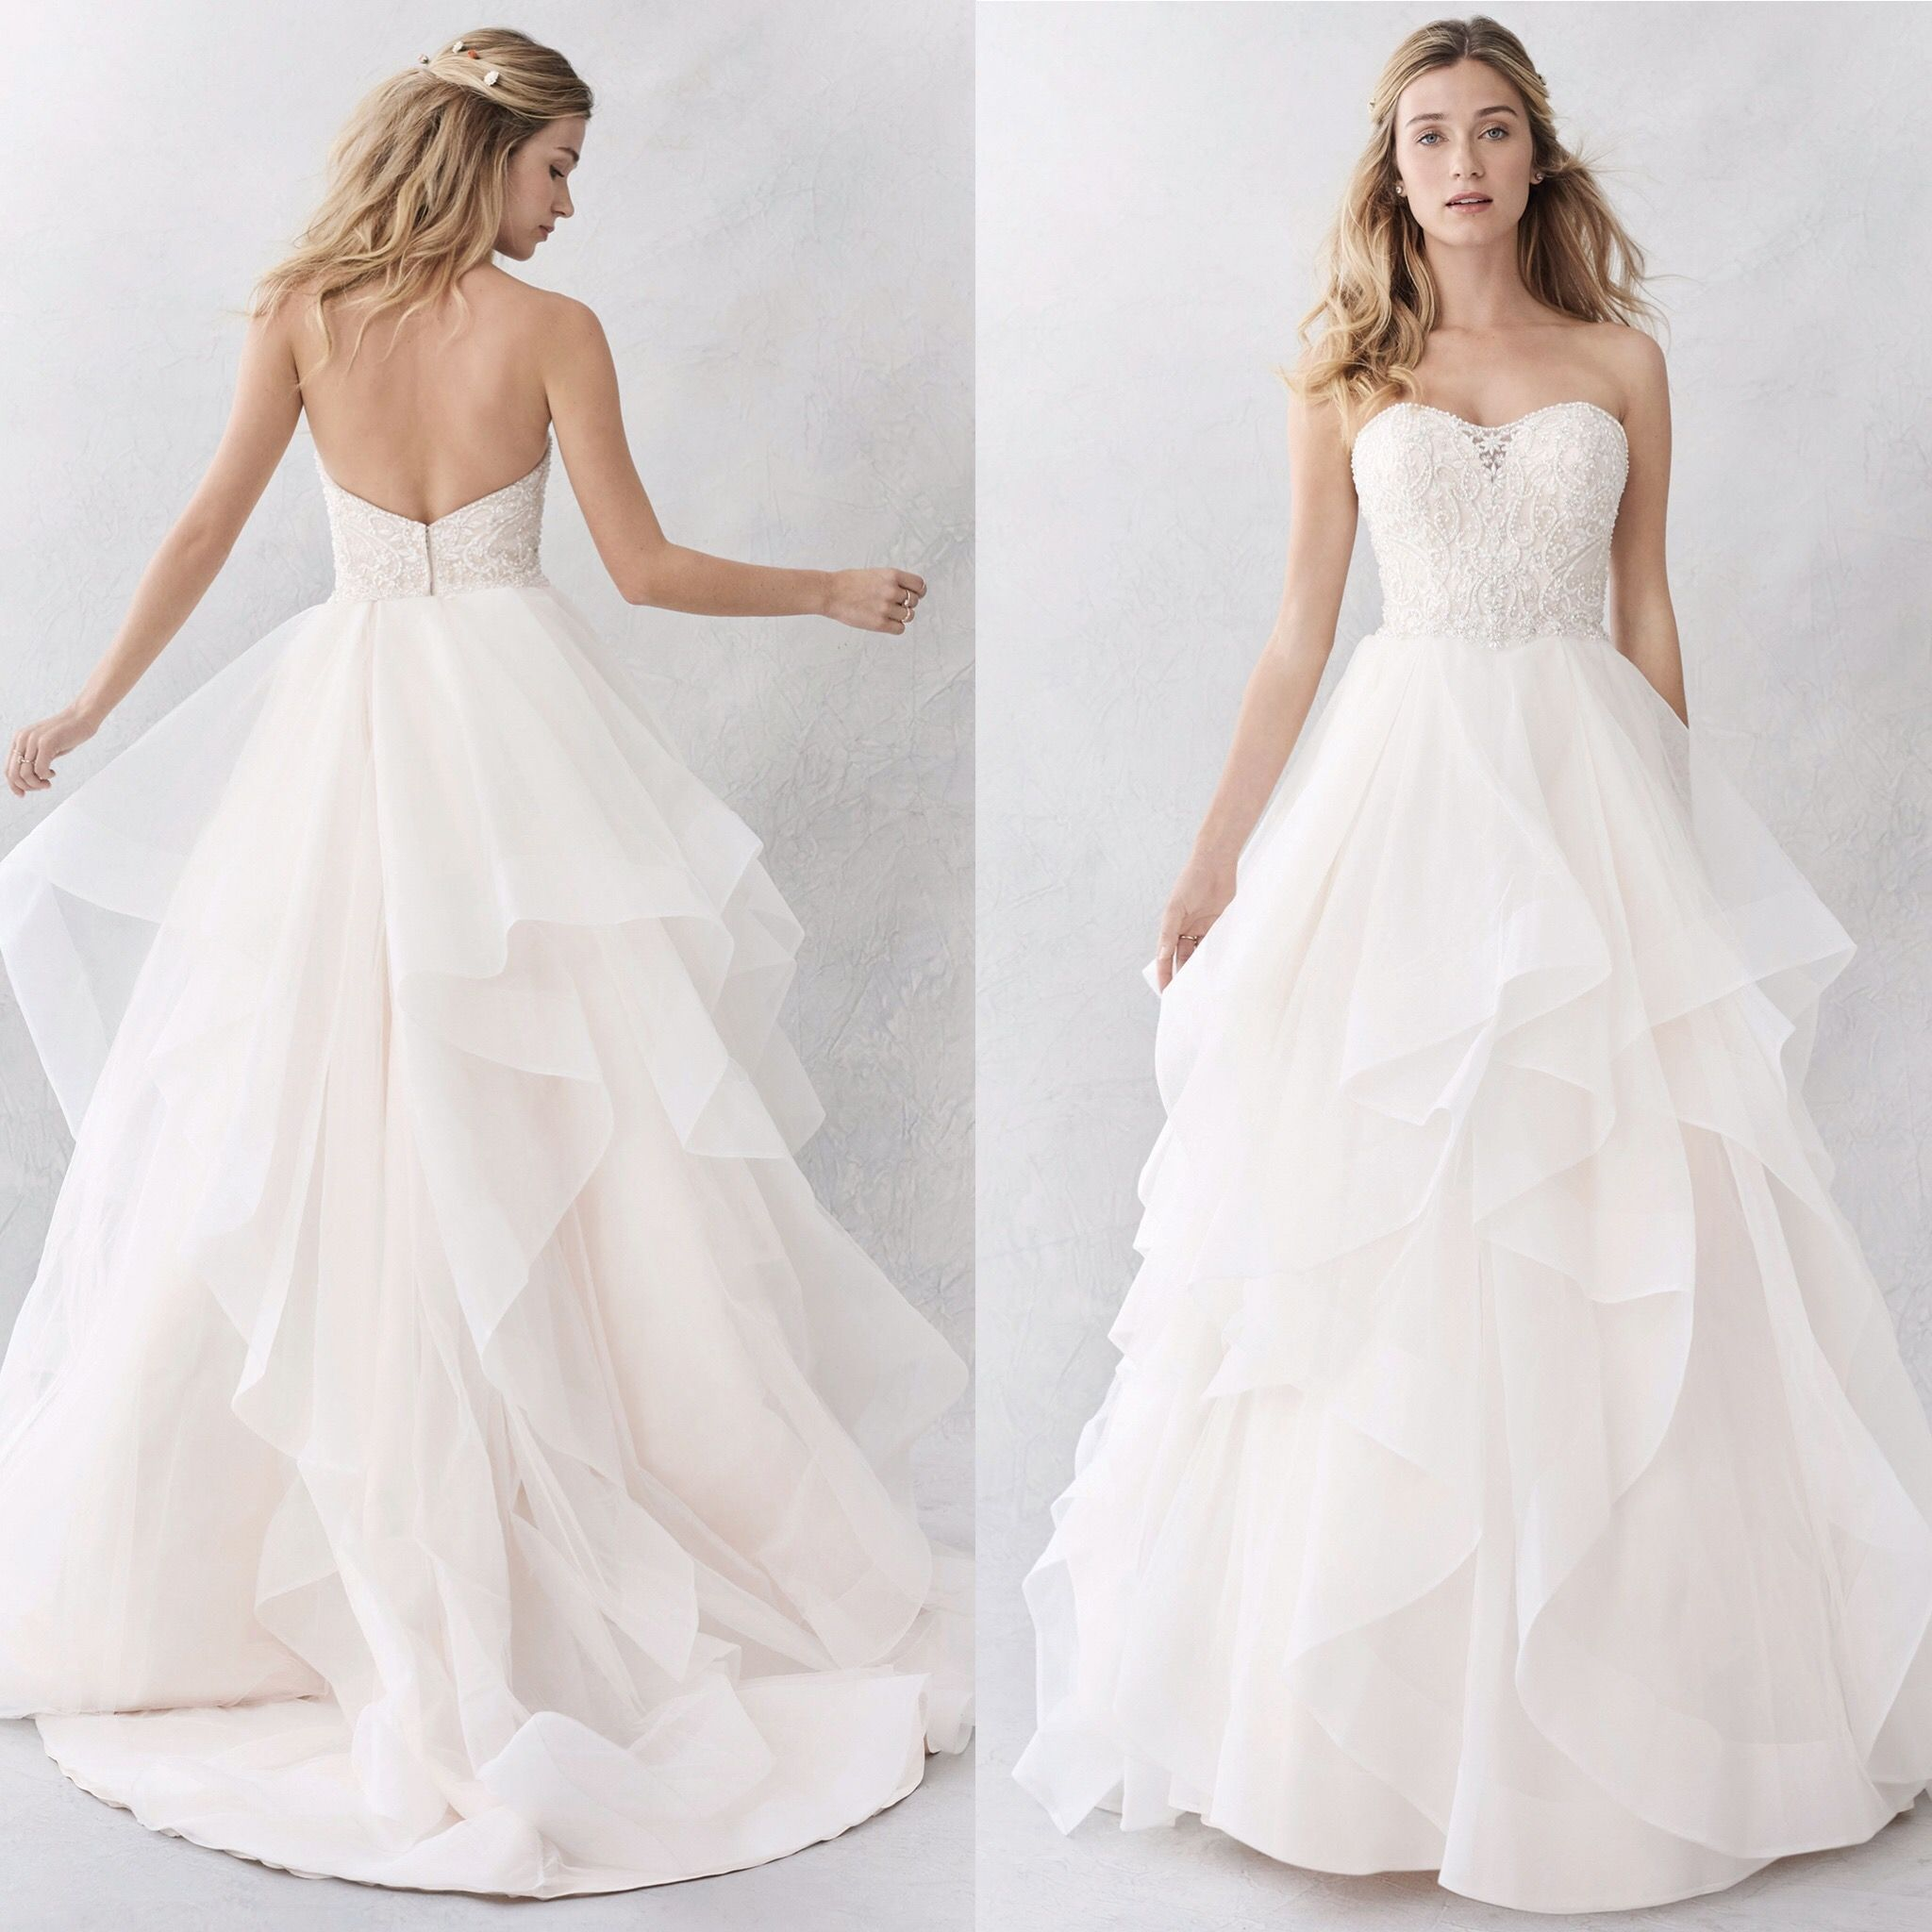 Want to win this bridal gown? Enter to win! Just call and schedule ...